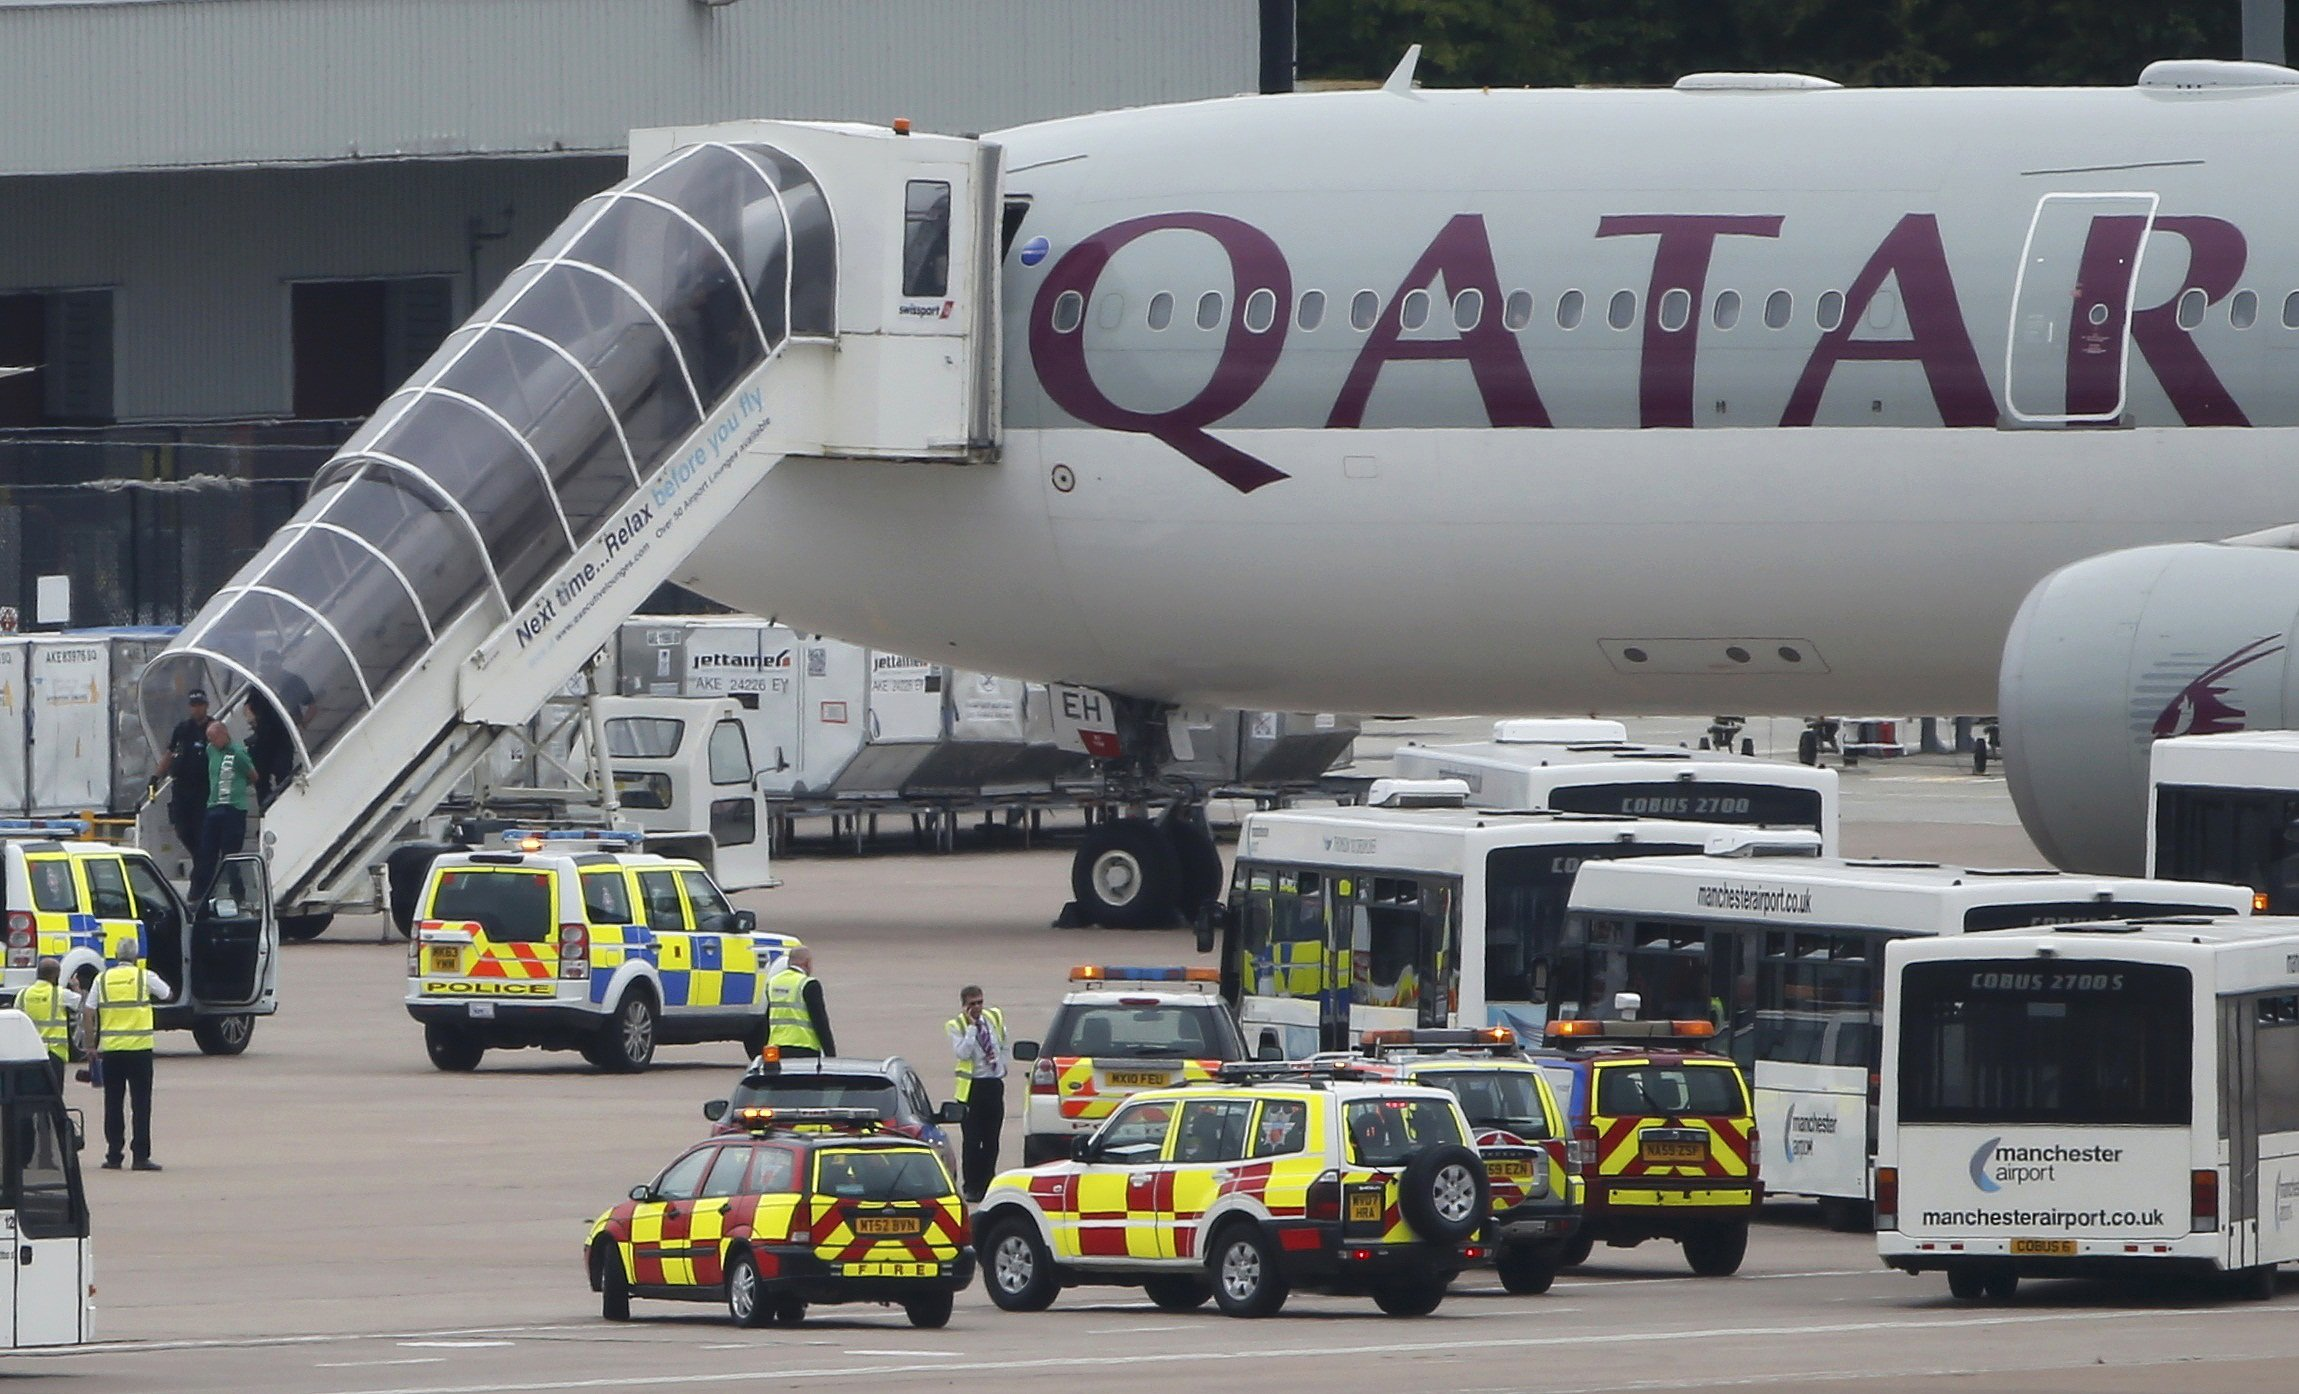 A man is escorted off a Qatar Airways aircraft by police at Manchester airport in Manchester, England on August 5, 2014. A British fighter jet escorted a passenger plane into Manchester airport on Tuesday after the pilot reported that a suspect device was possibly on board.